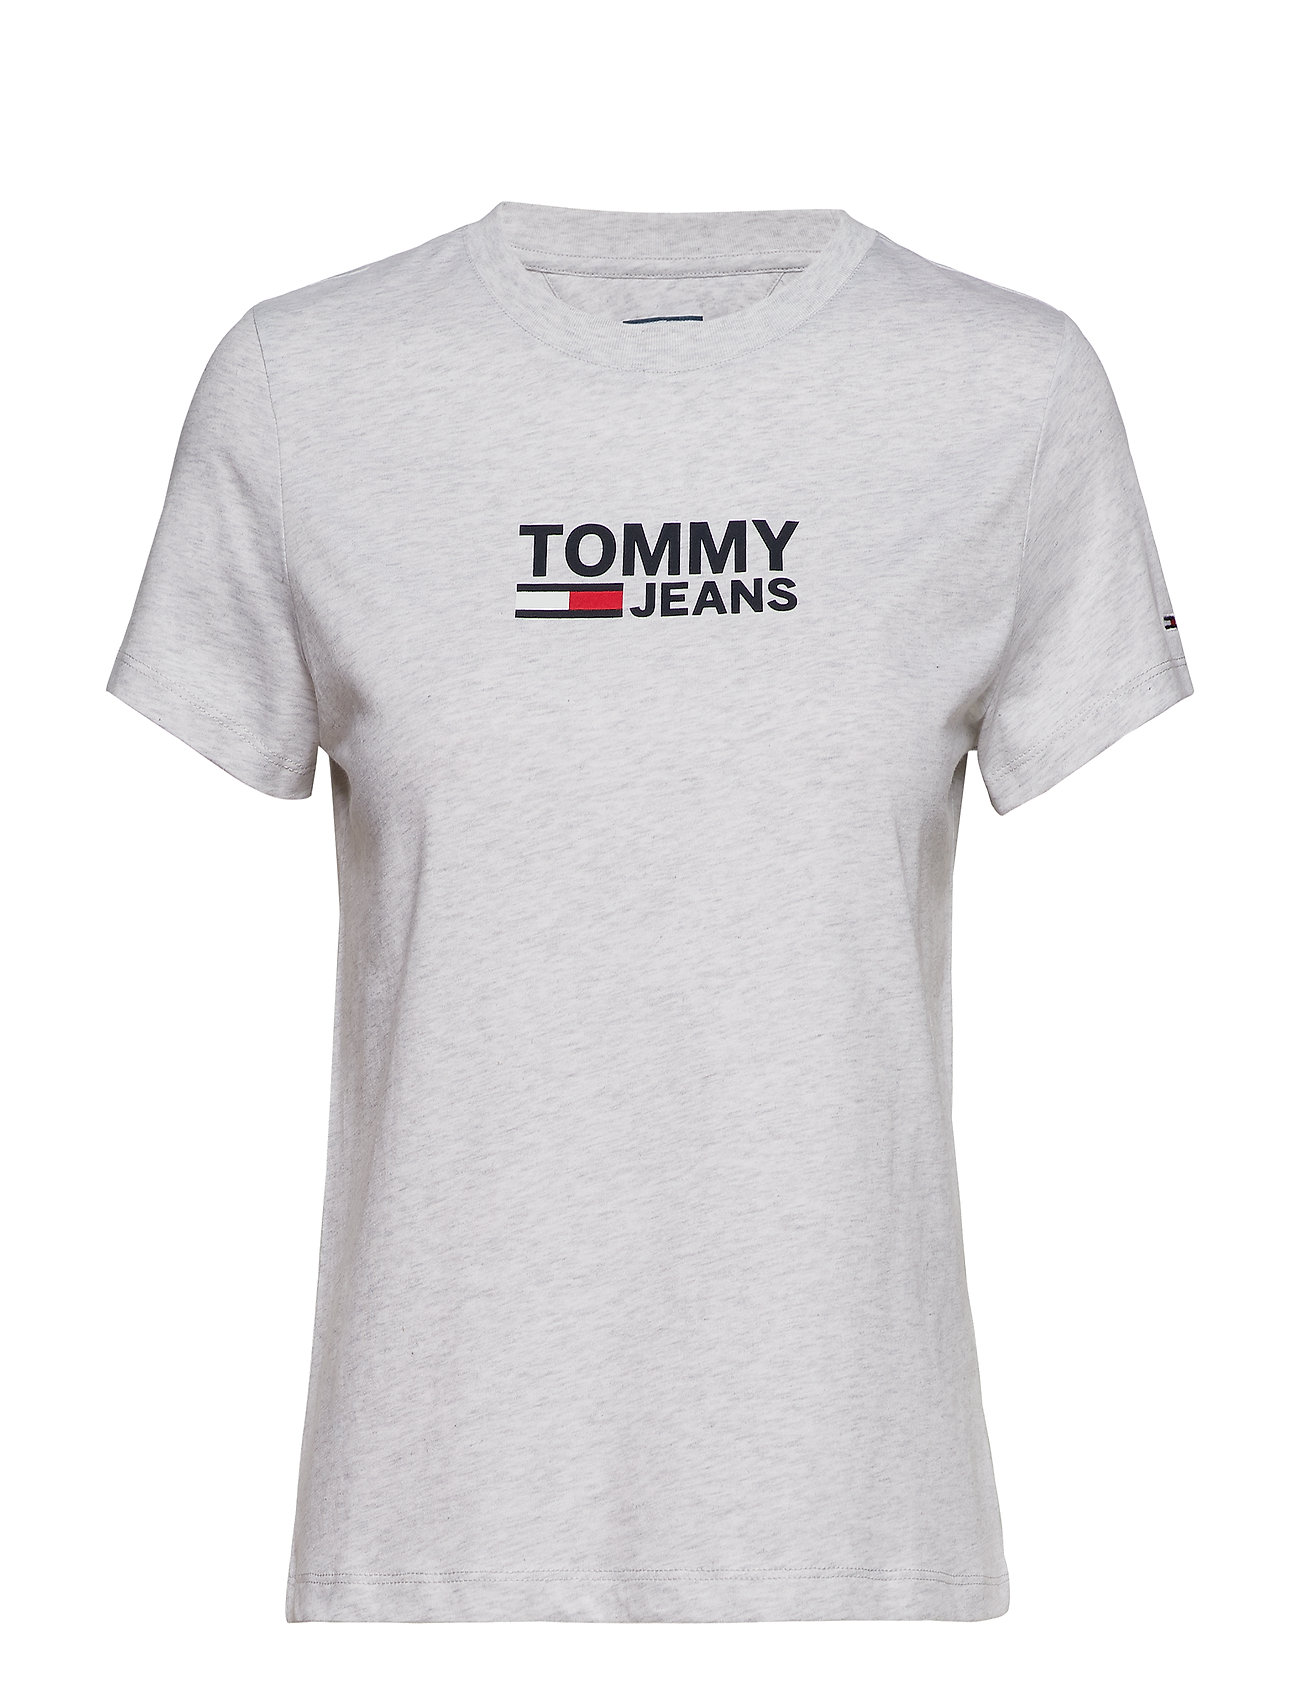 Tommy Jeans TJW CORP LOGO TEE - PALE GREY HEATHER